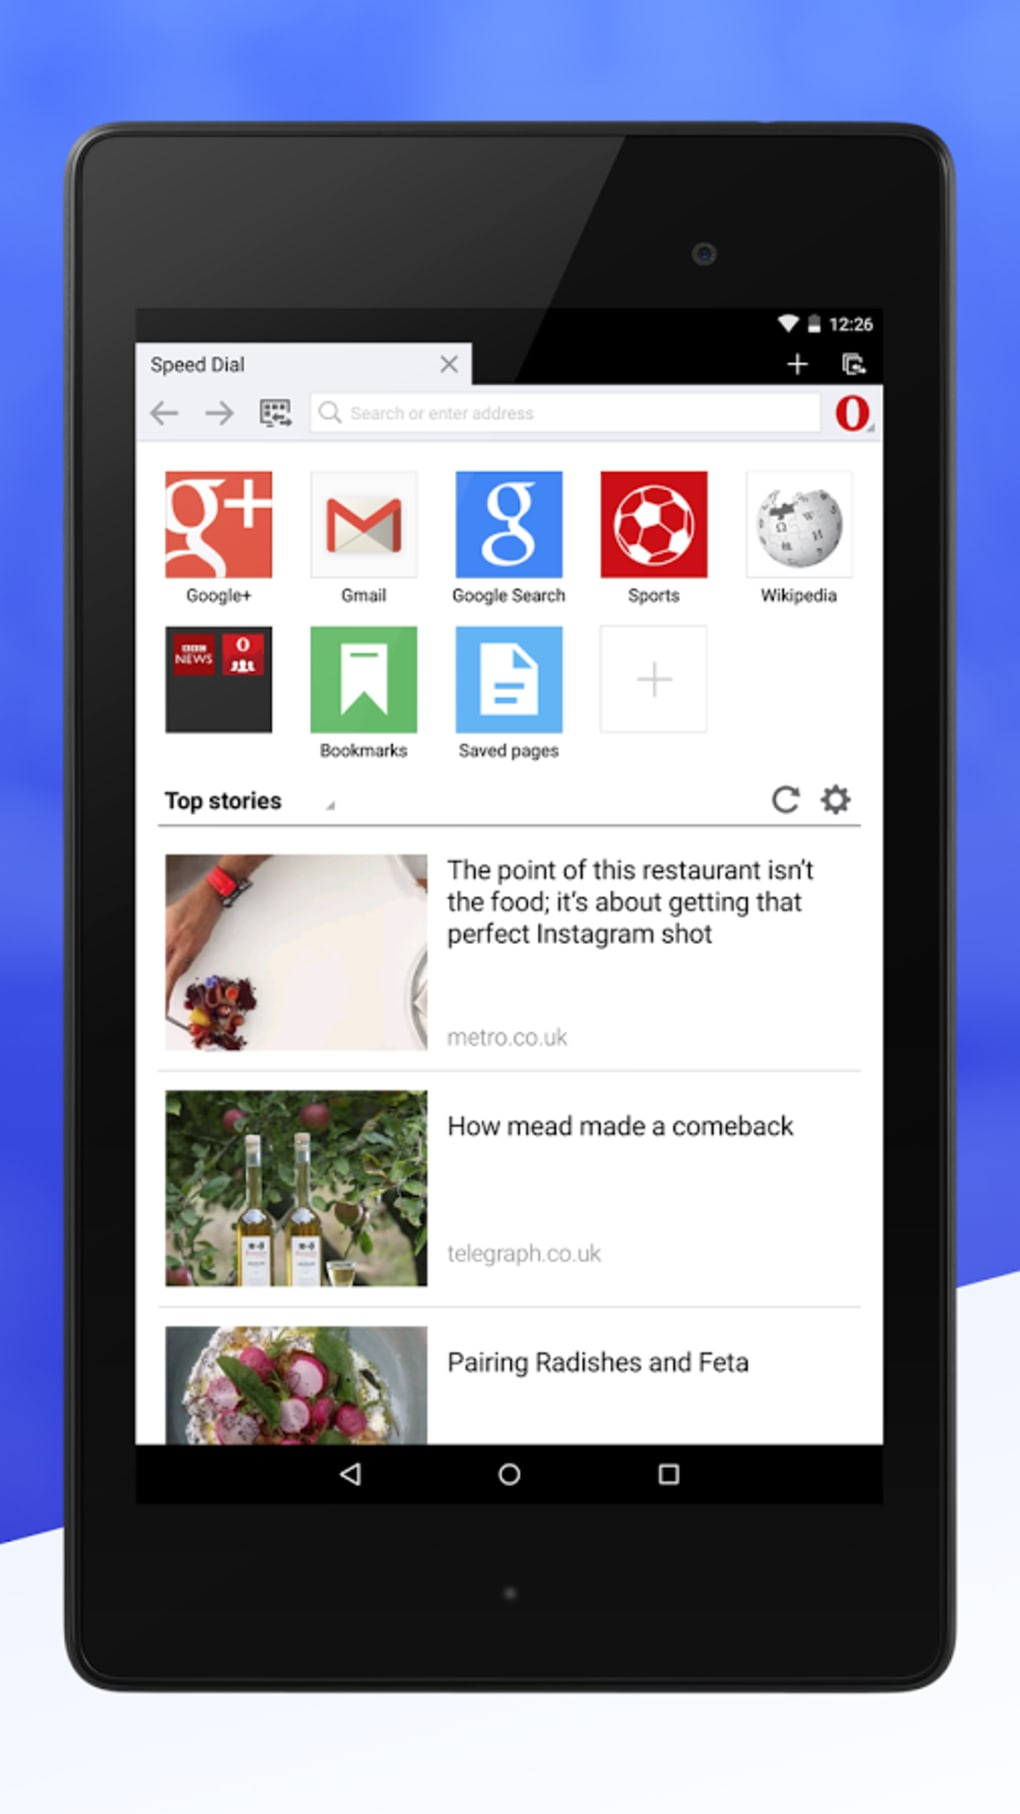 opera mini for android 23 6 free download